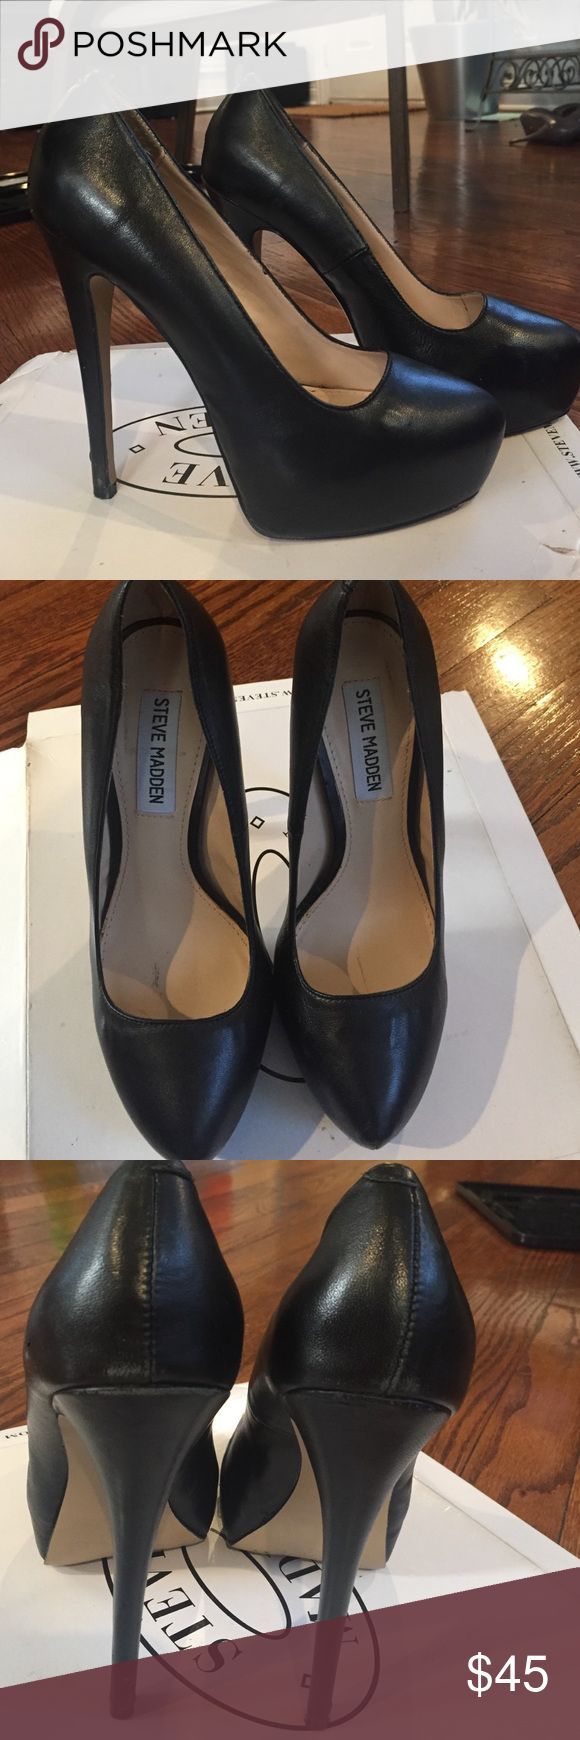 Black Steven Madden Heels Blacks platform pump. Only used a couple times. Like-new condition. Steve Madden Shoes Heels